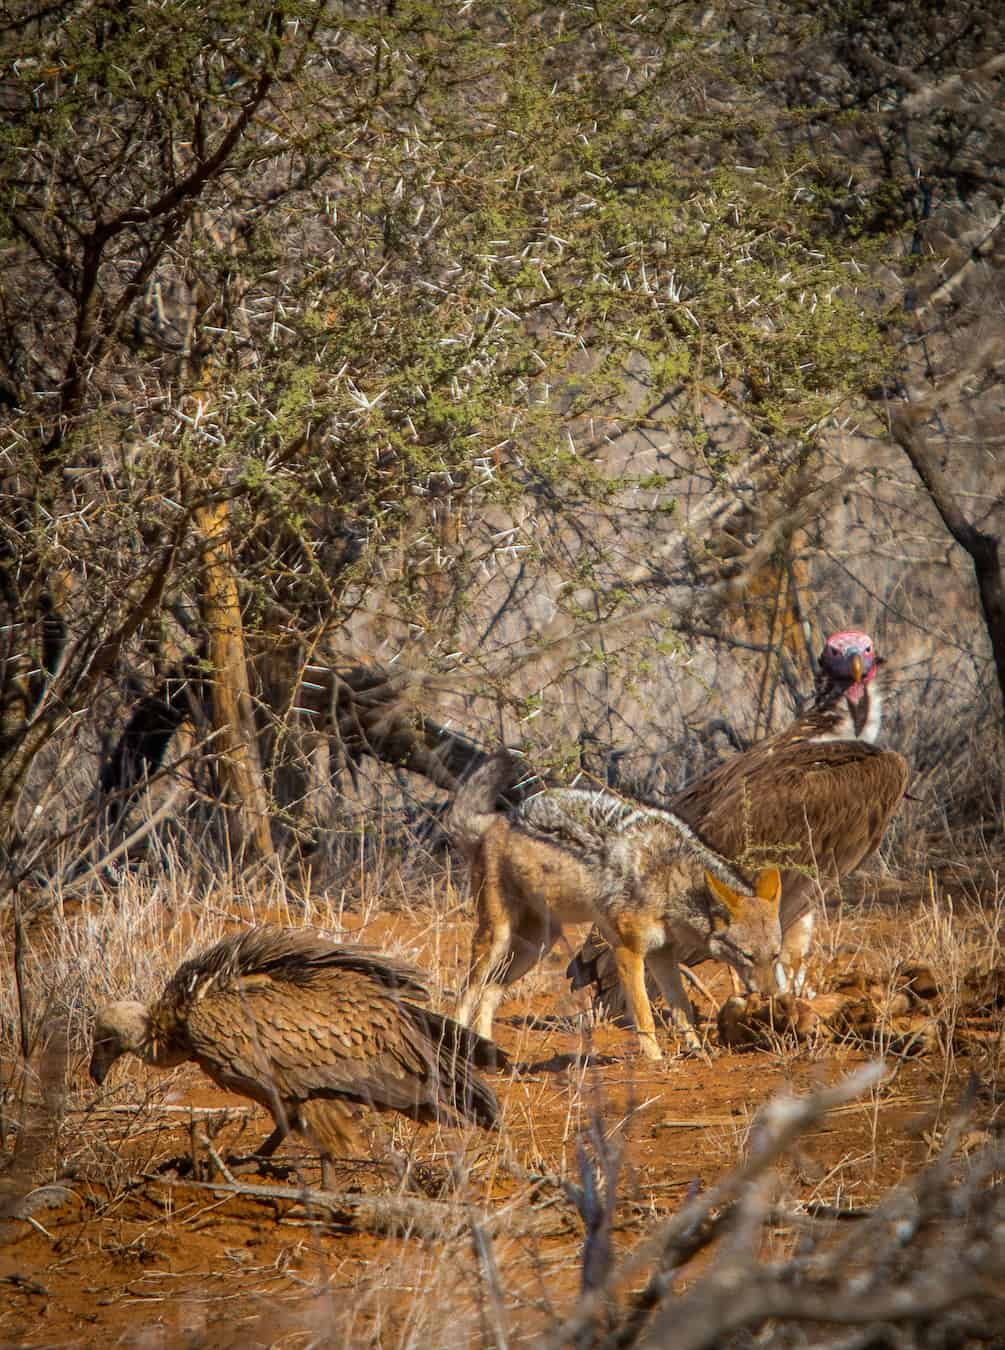 Black Backed Jackal & Vultures sharing a meal